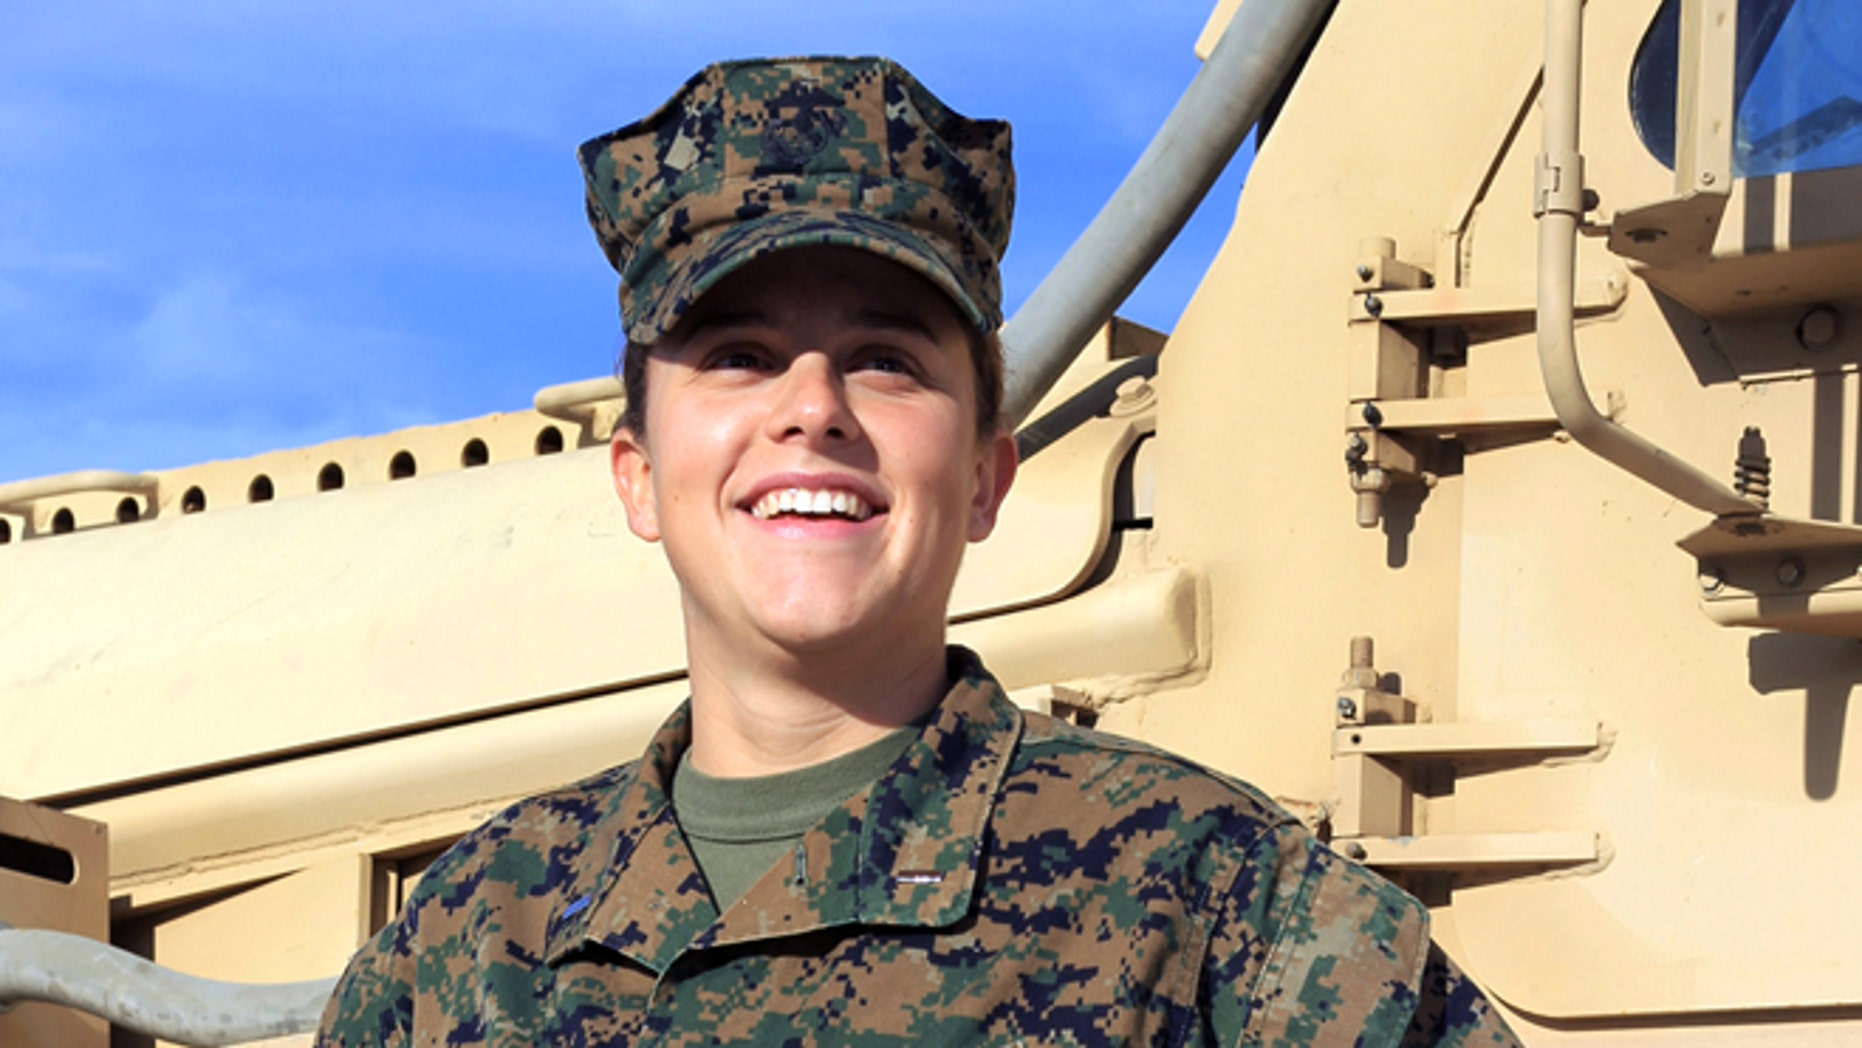 FILE: Nov. 29, 2012:  Lt. Brandy Soublet on the Marine base 29 Palms in Southern California. Image provided by the United States Marine Corps.